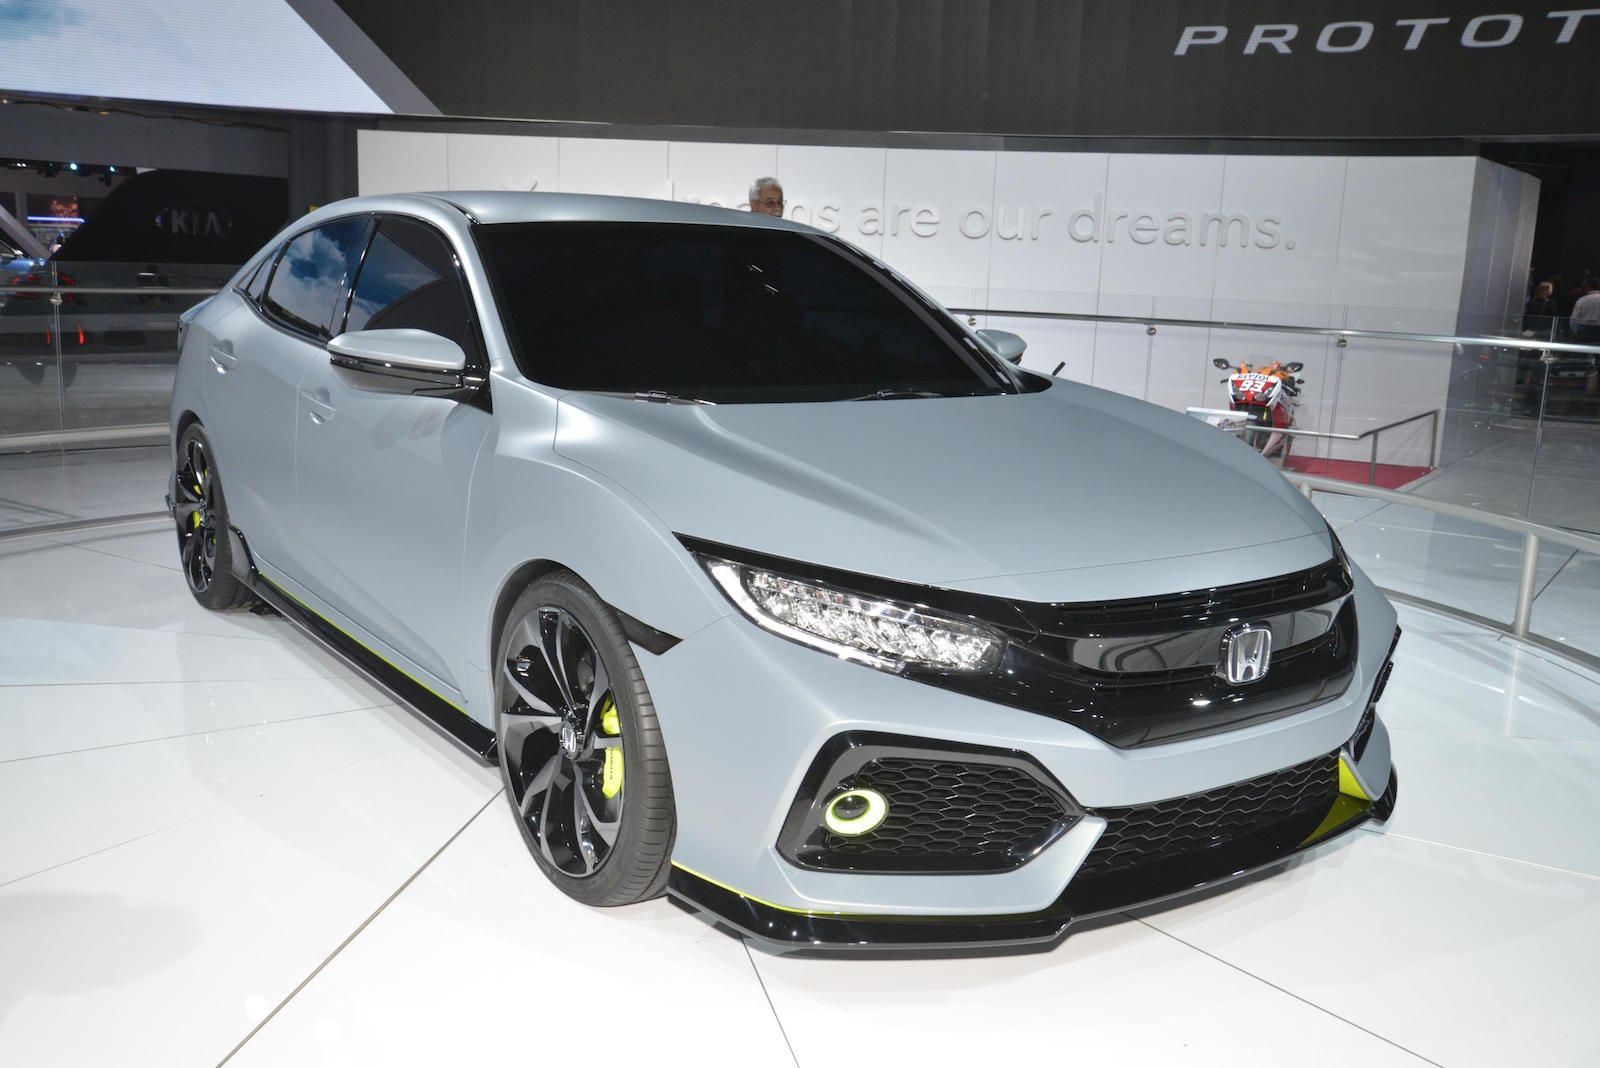 2017 Honda Civic Hatchback to offer turbo engine, 6speed